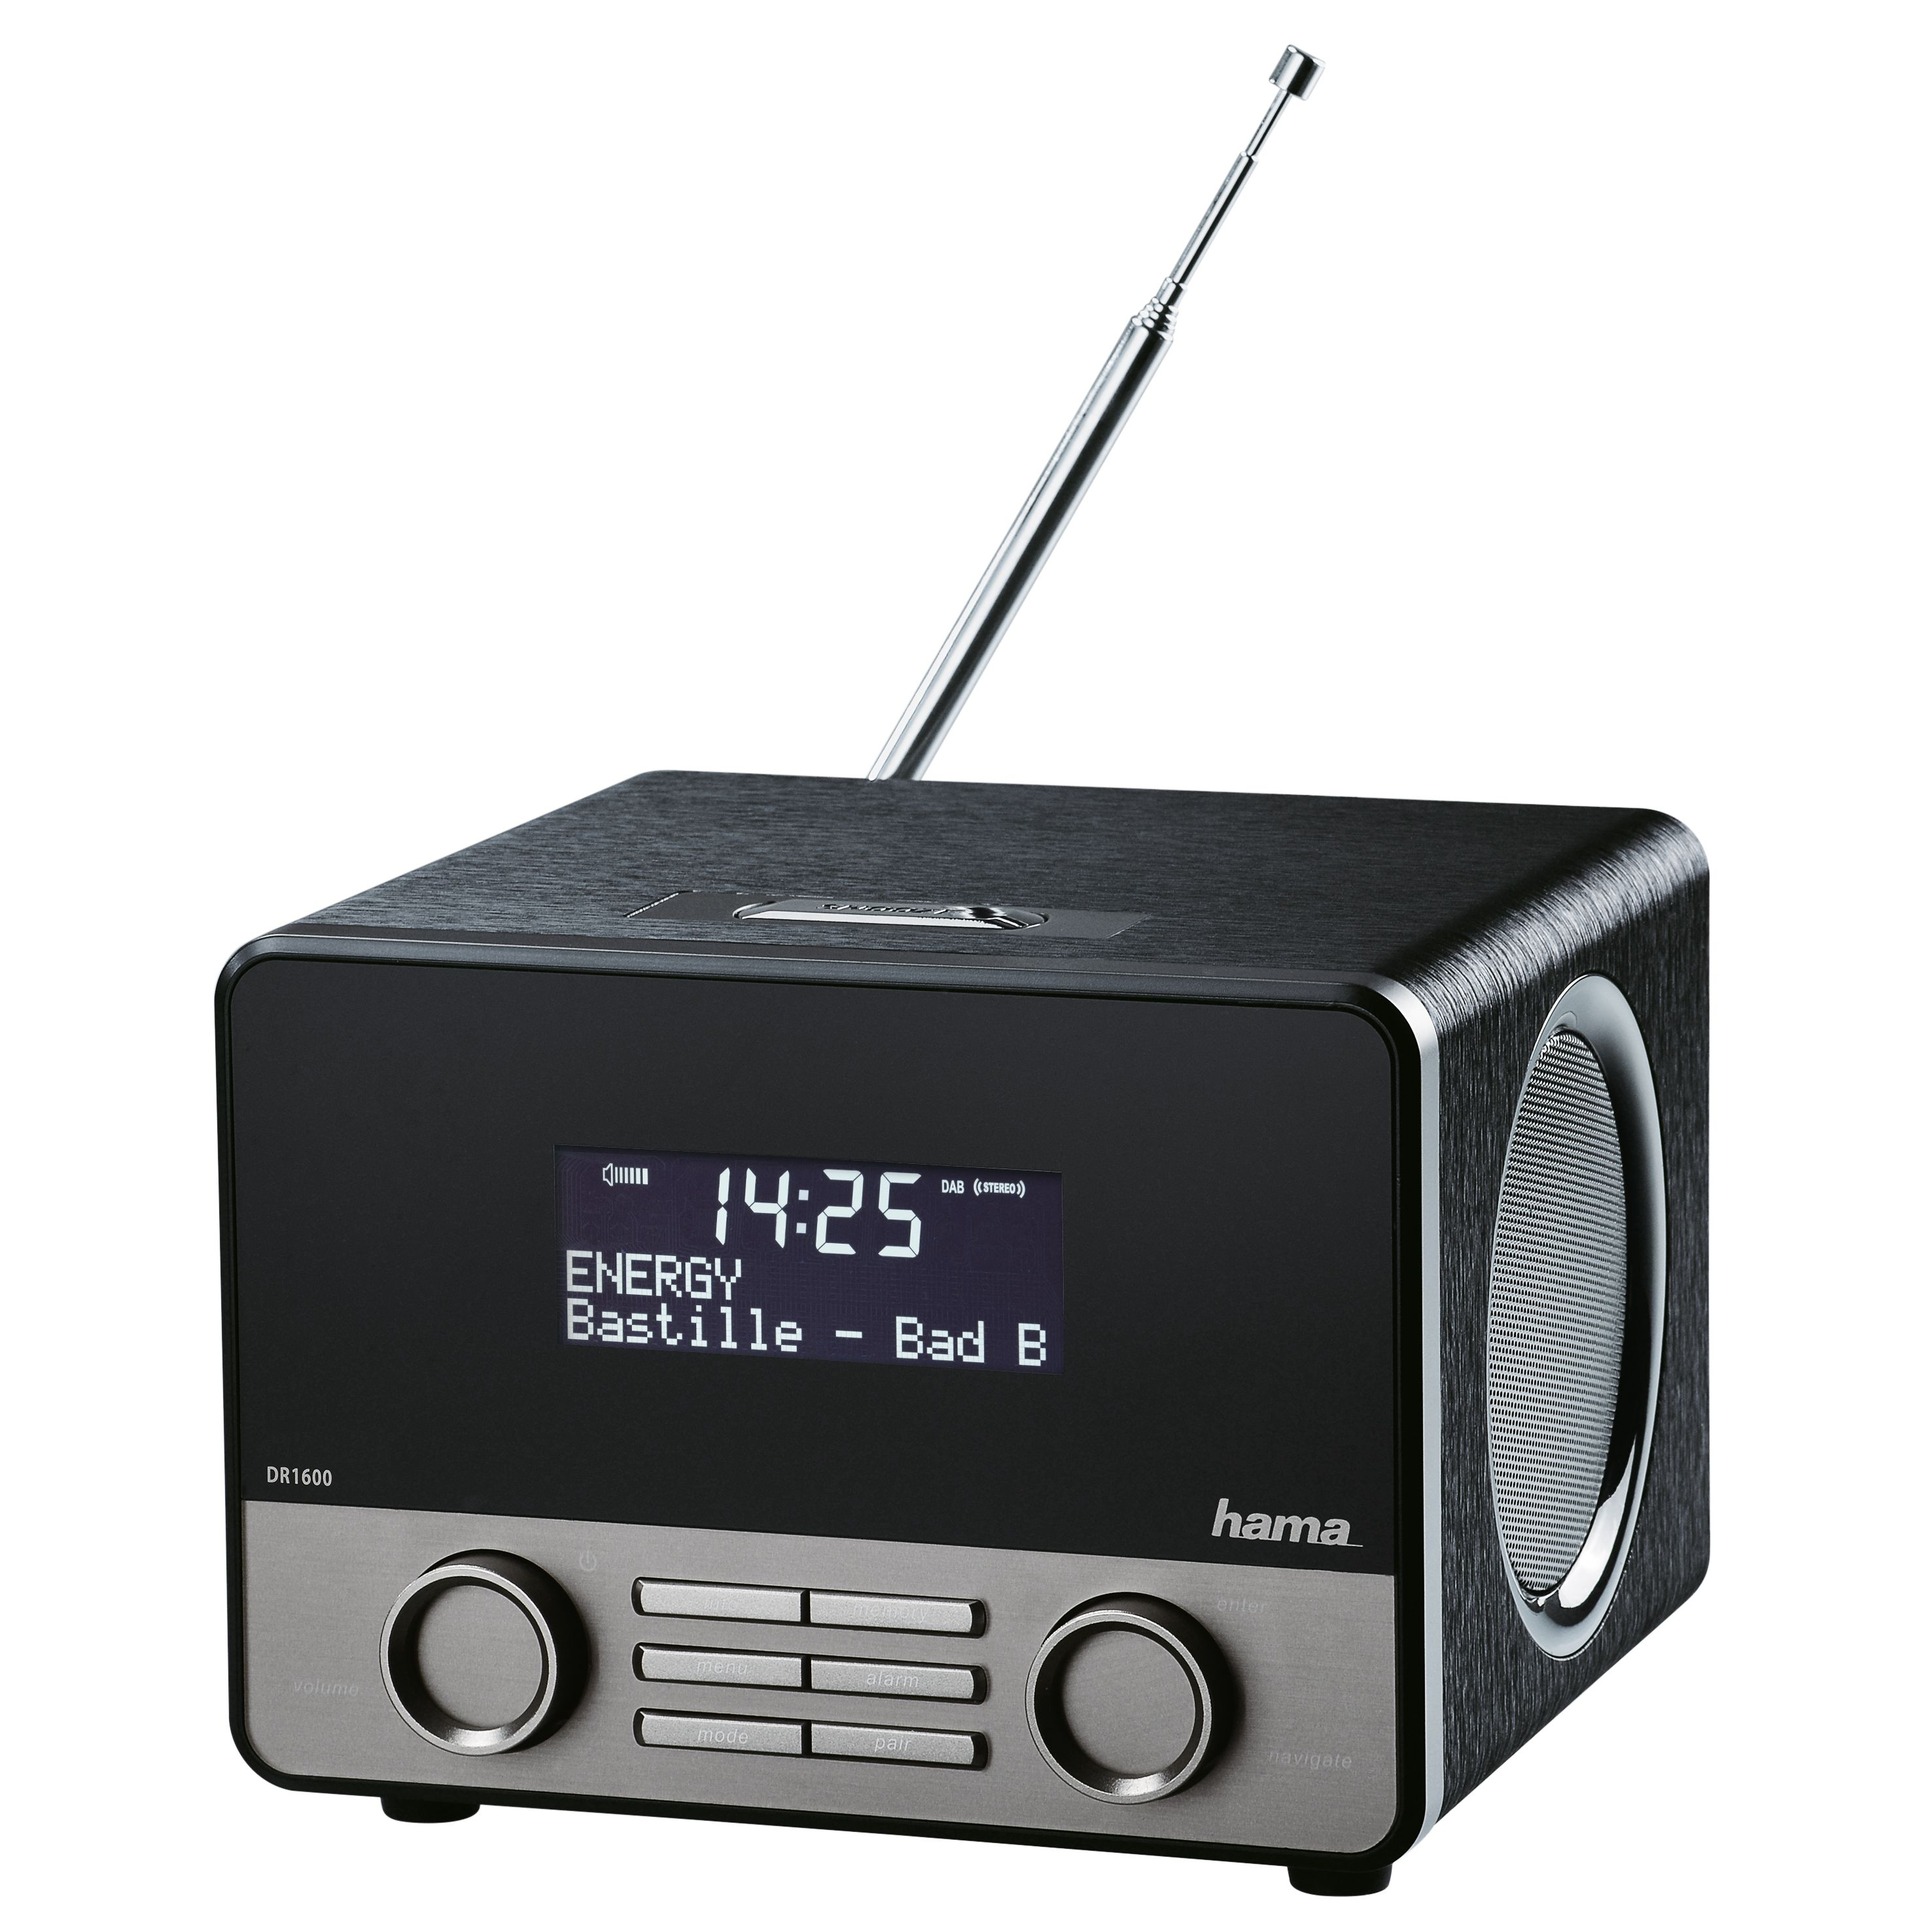 Hama - Digital Radio, DAB+/FM/Bluetooth